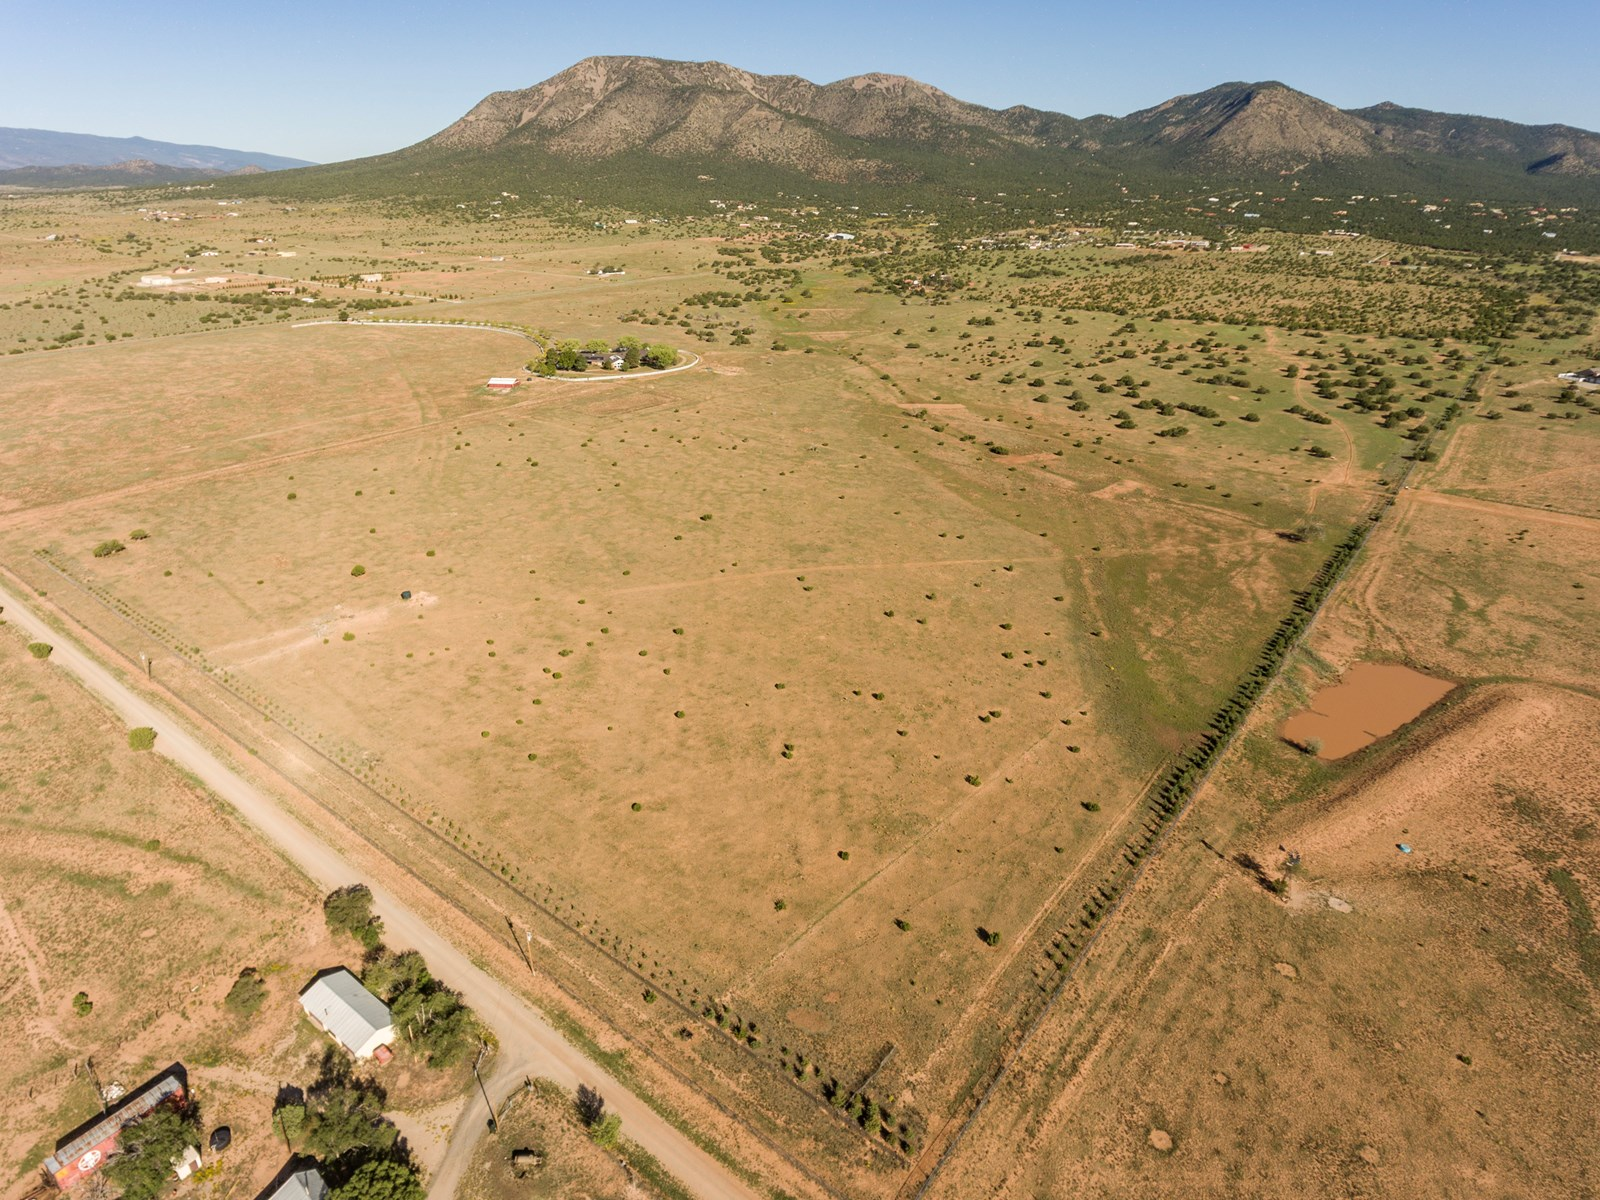 Santa Fe County NM Ranch Land For Sale Near Edgewood